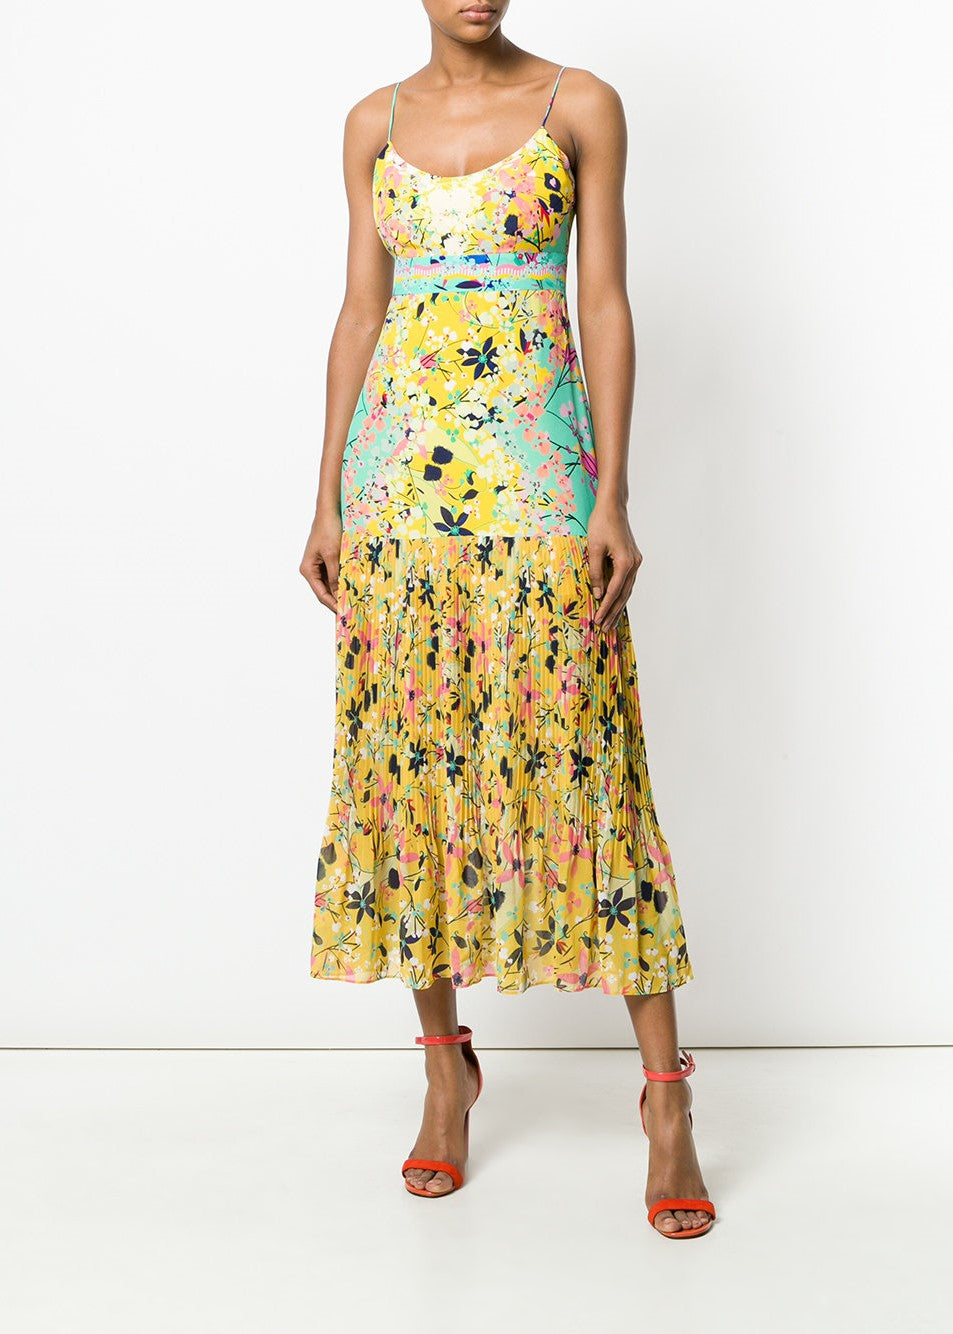 Saloni Veronica dress in lemon garden placement